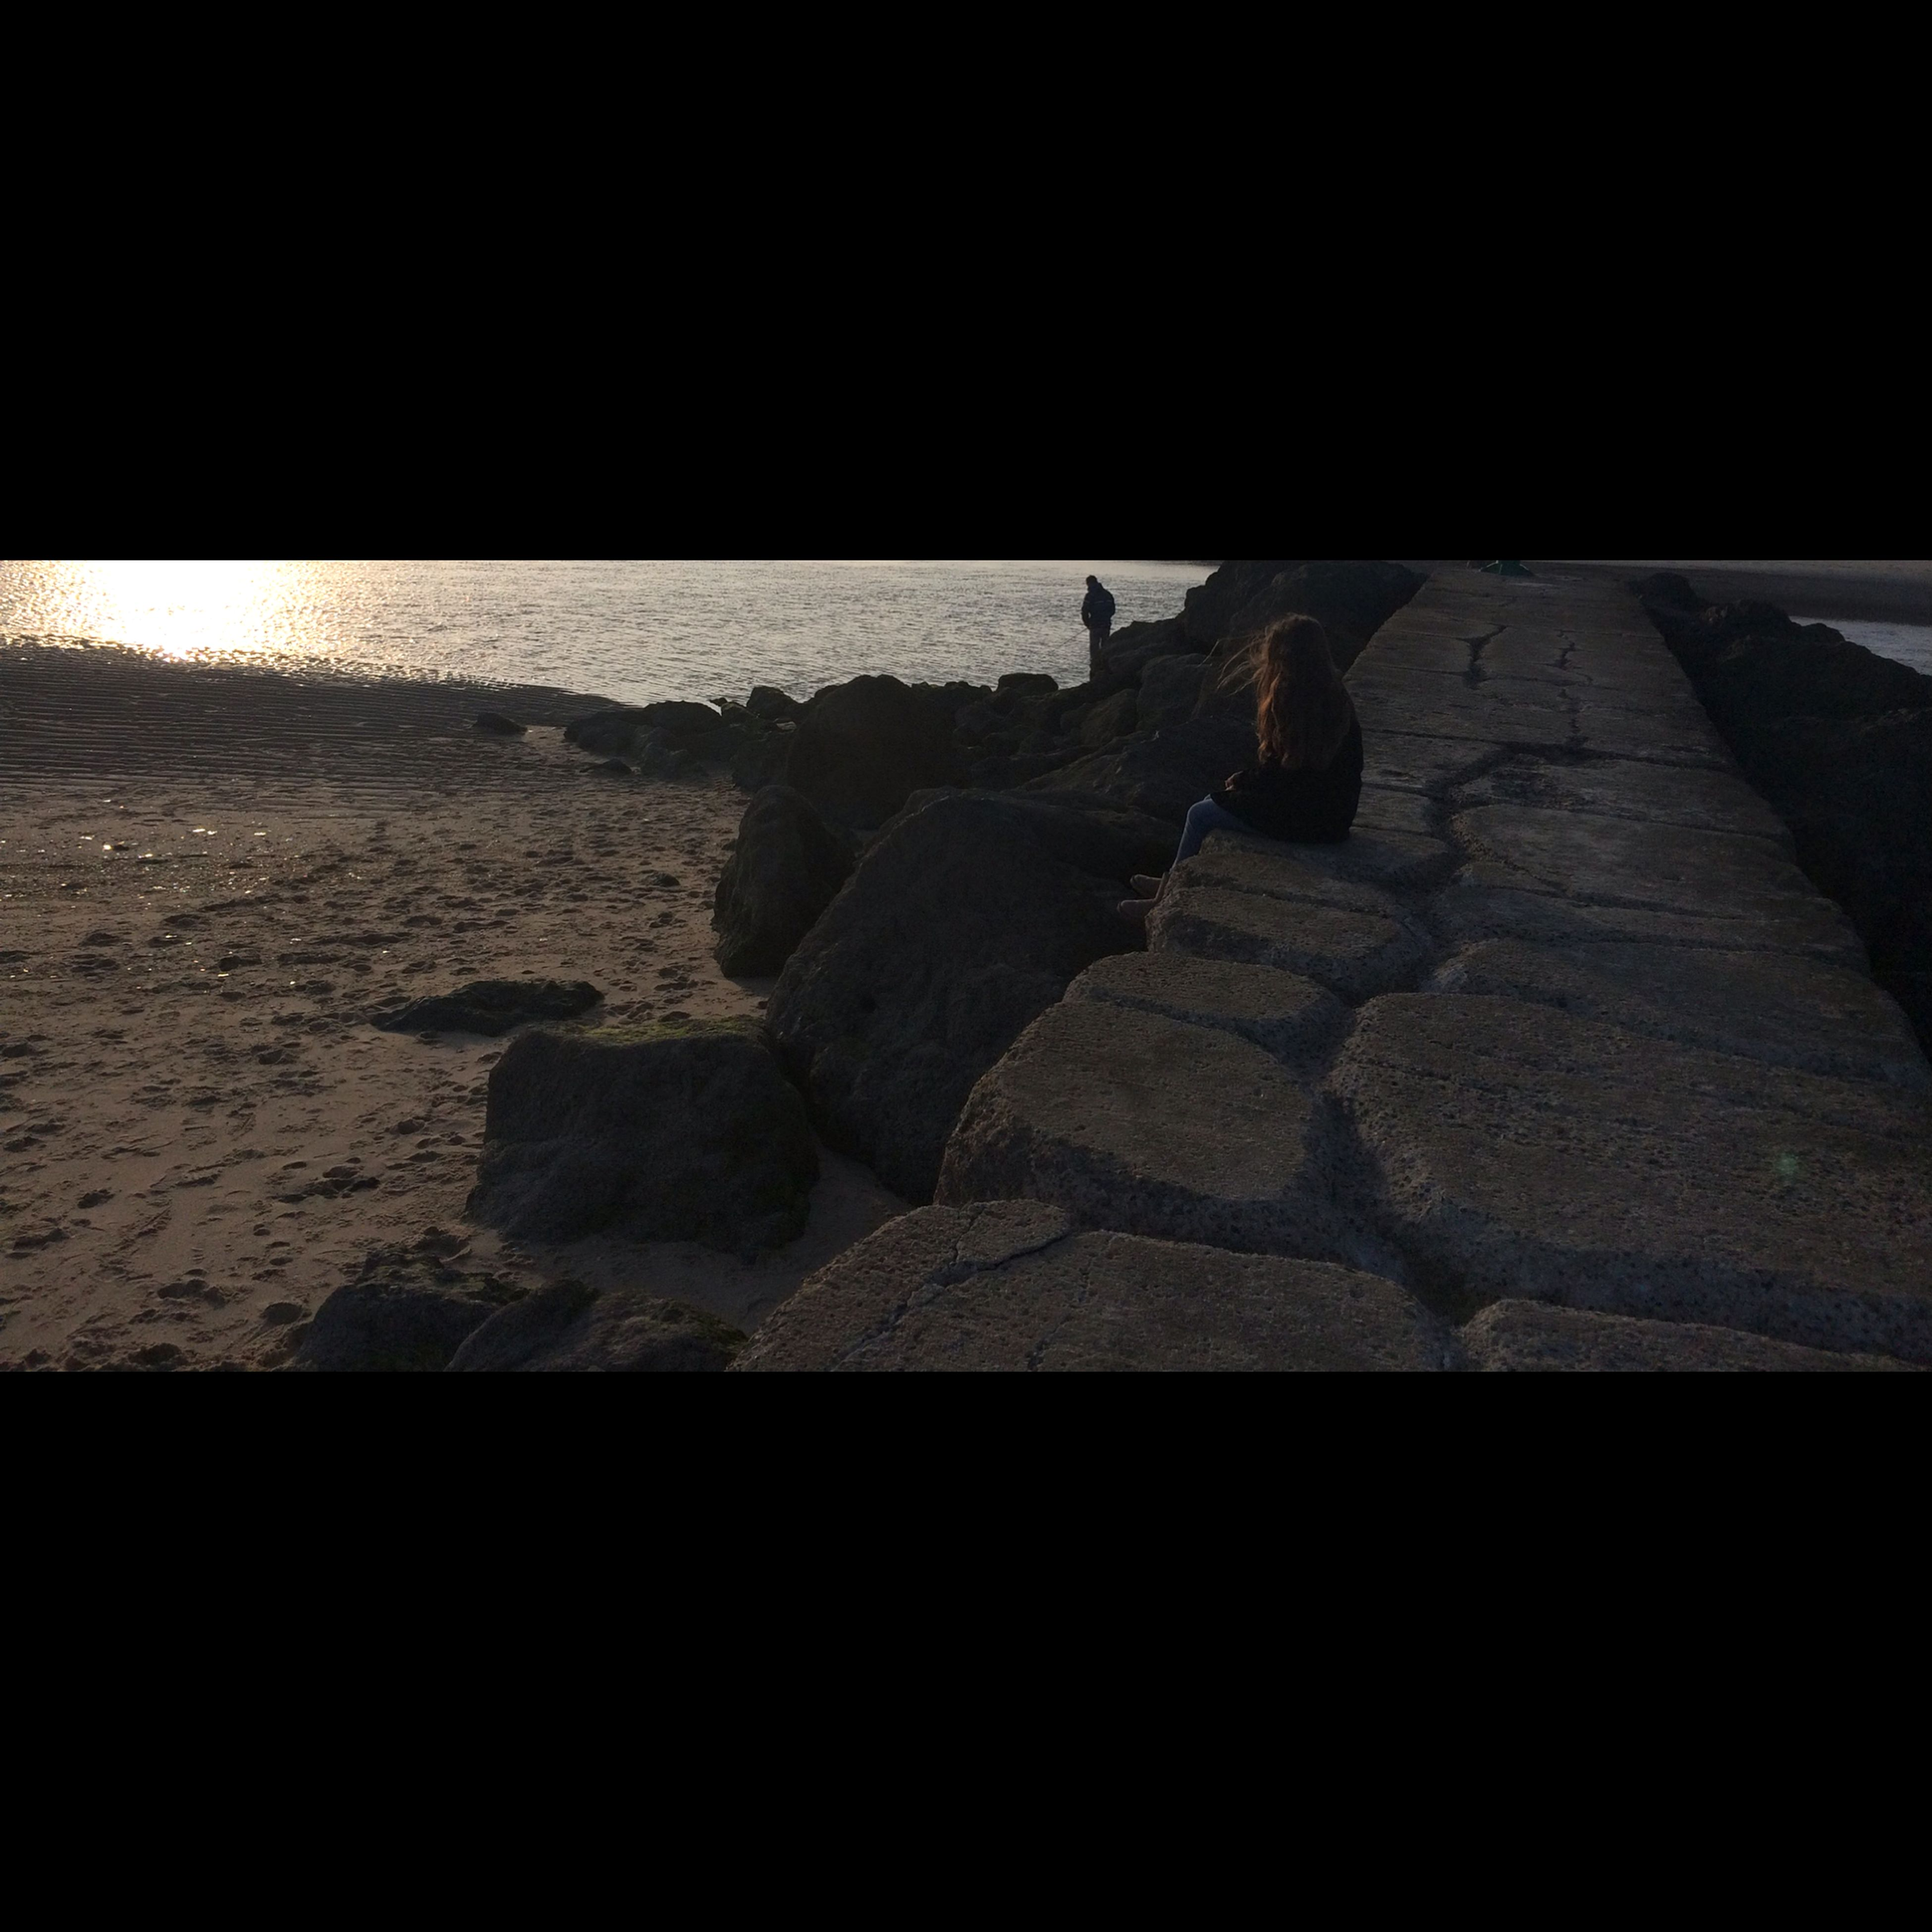 shadow, transfer print, sunlight, auto post production filter, high angle view, water, sea, silhouette, beach, outdoors, day, nature, rock - object, copy space, dark, no people, tranquility, textured, vignette, railing